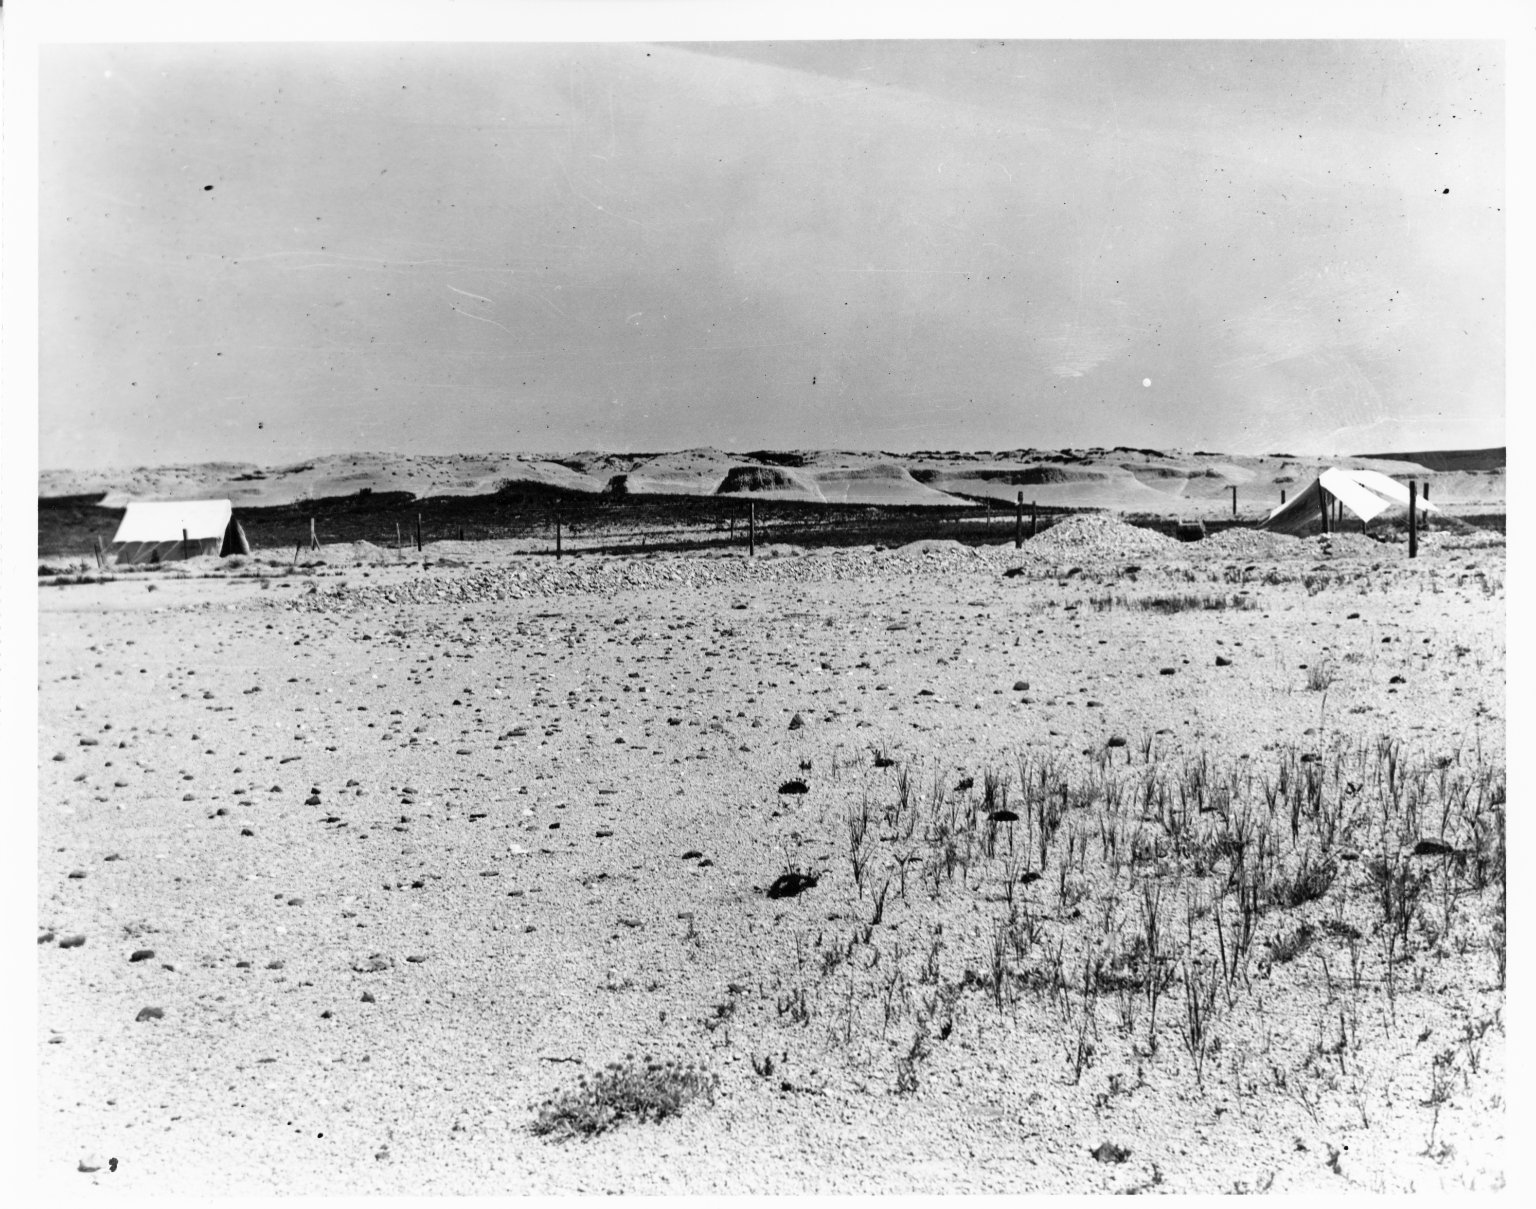 View of Fossil Quarry in Weld County, Colorado